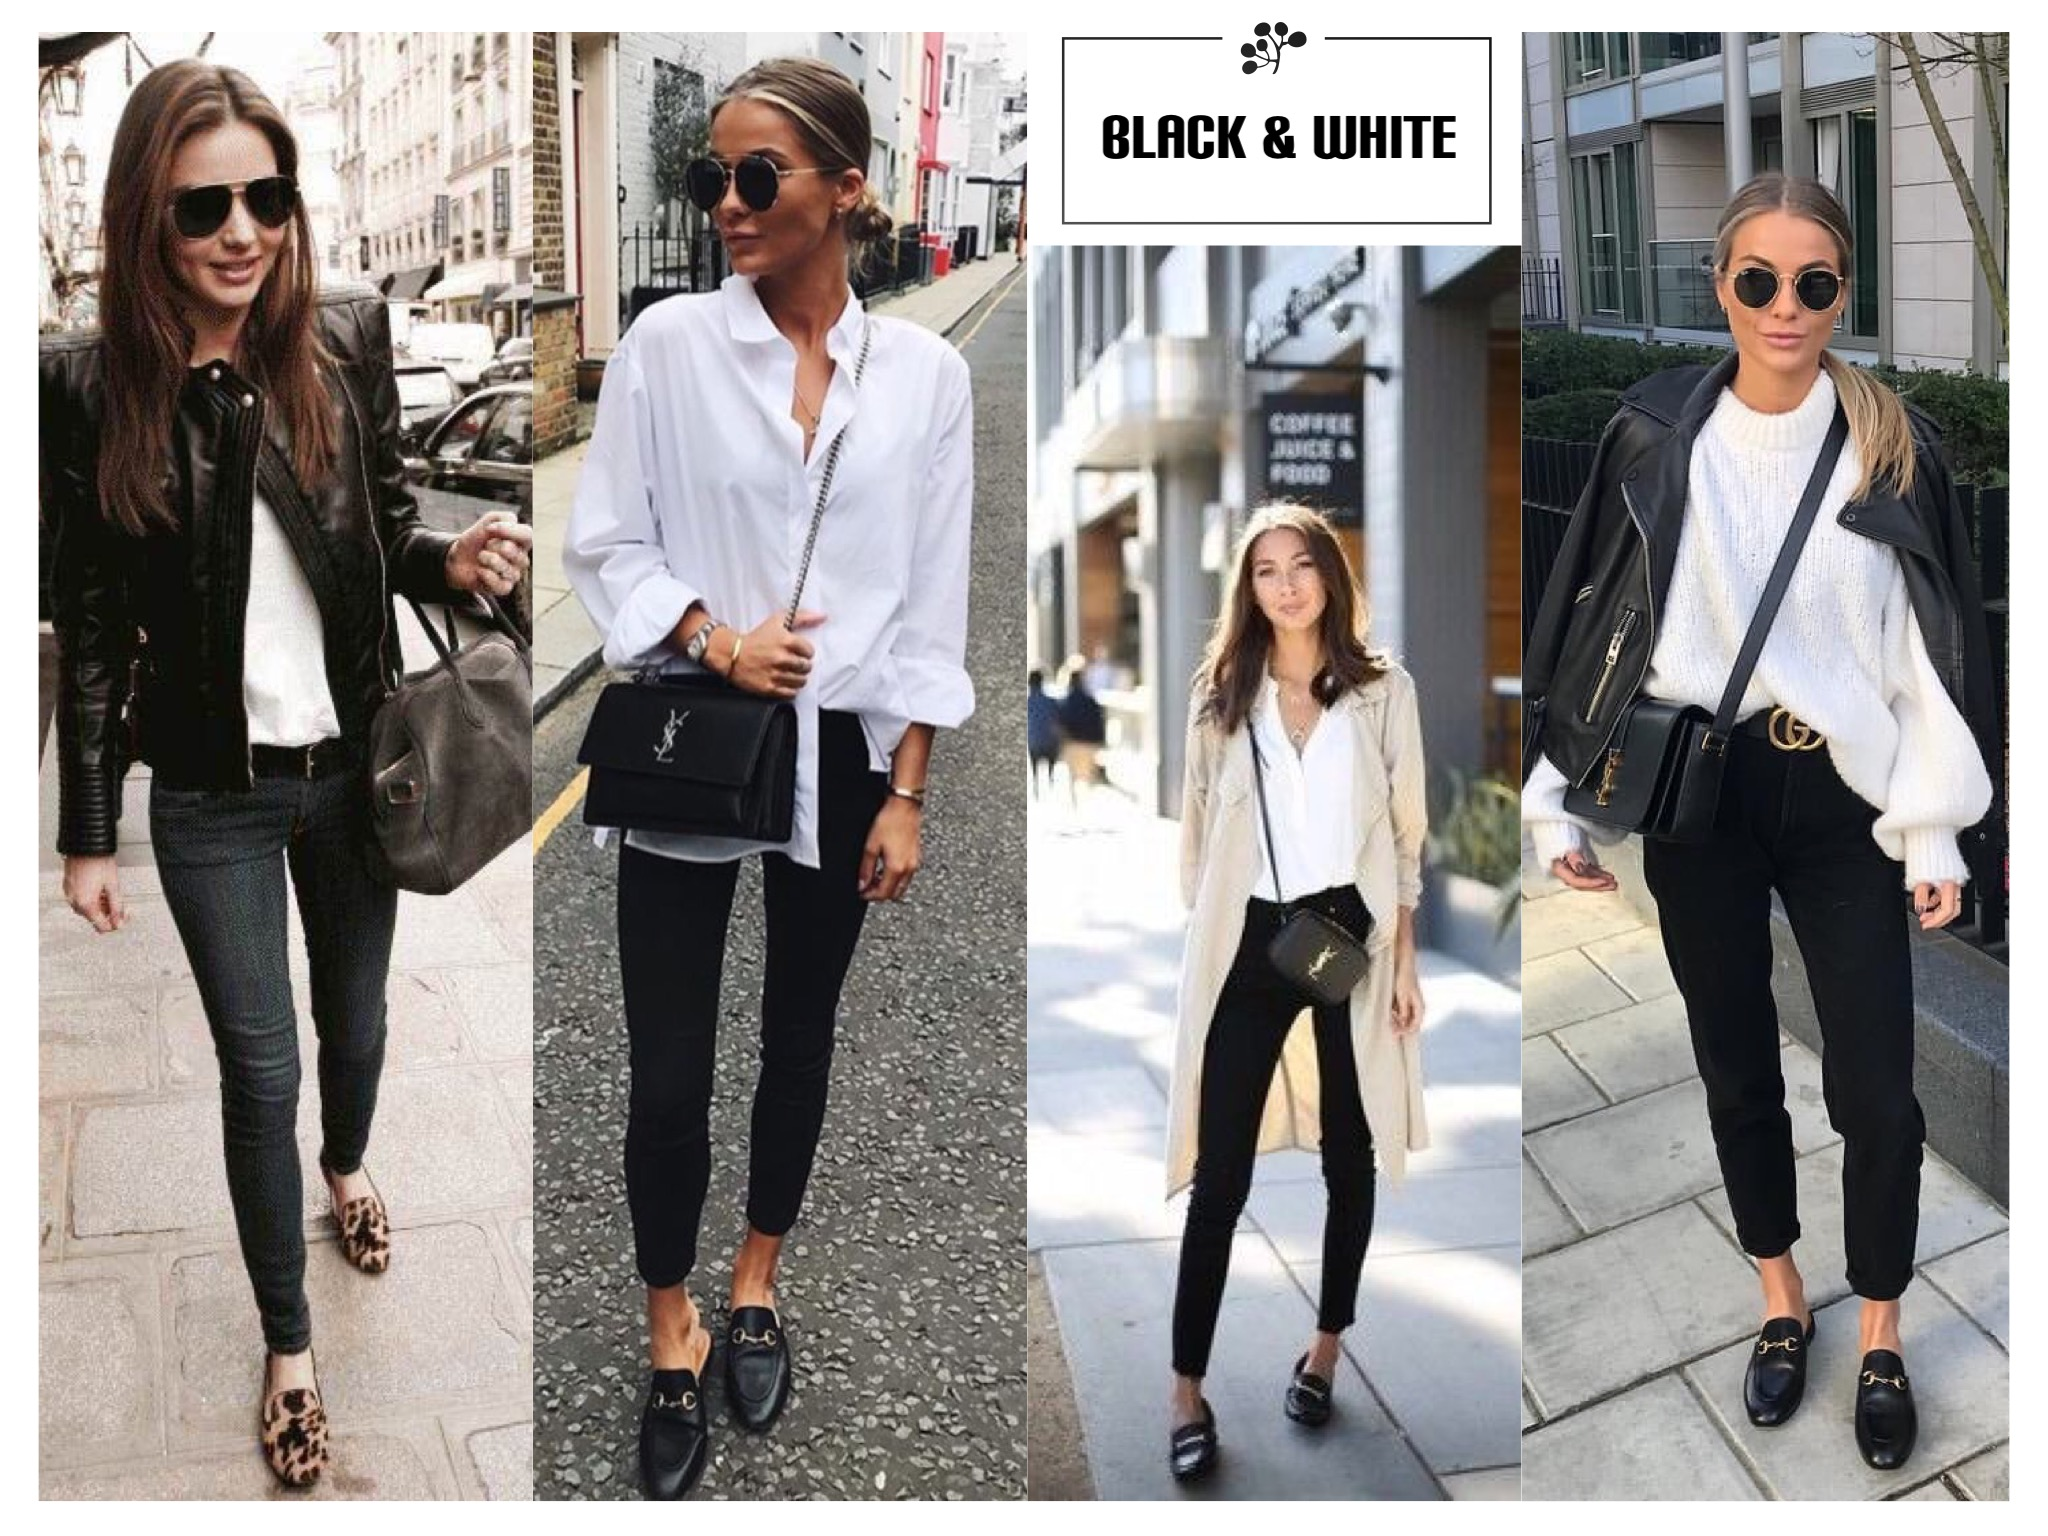 Black & White outfit pair with loafers